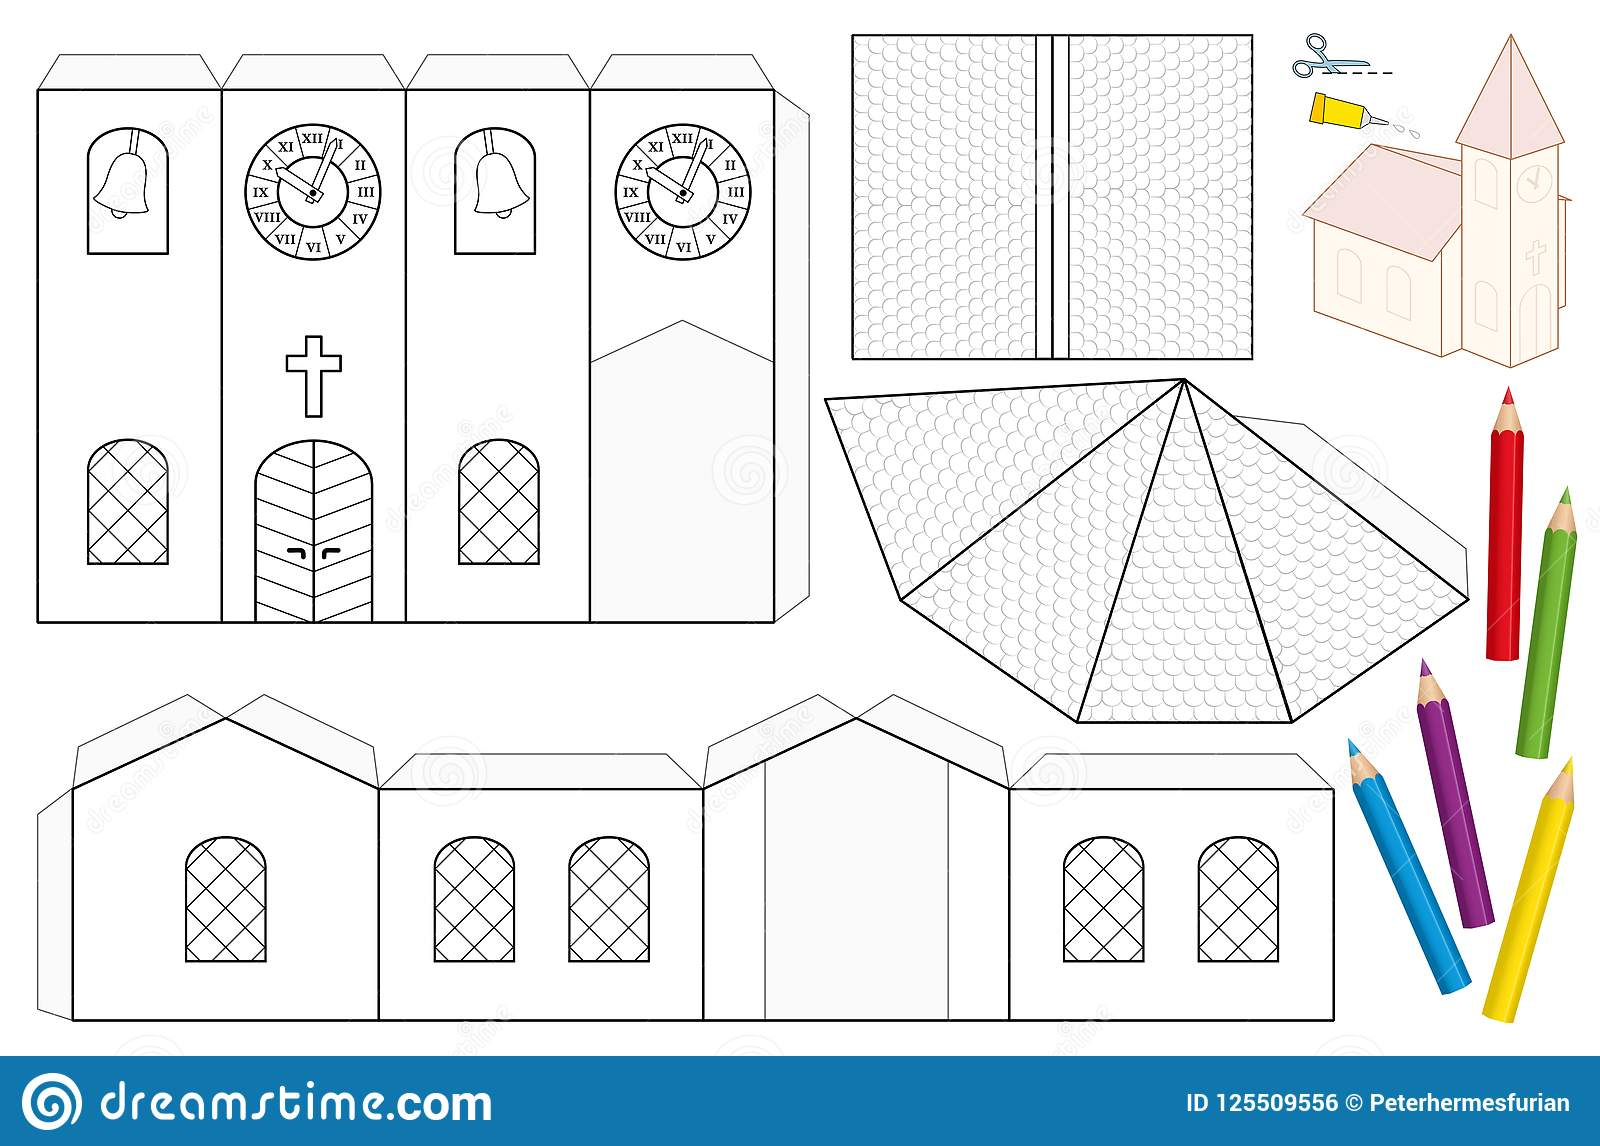 Church paper craft coloring template stock vector illustration of church paper craft coloring template maxwellsz